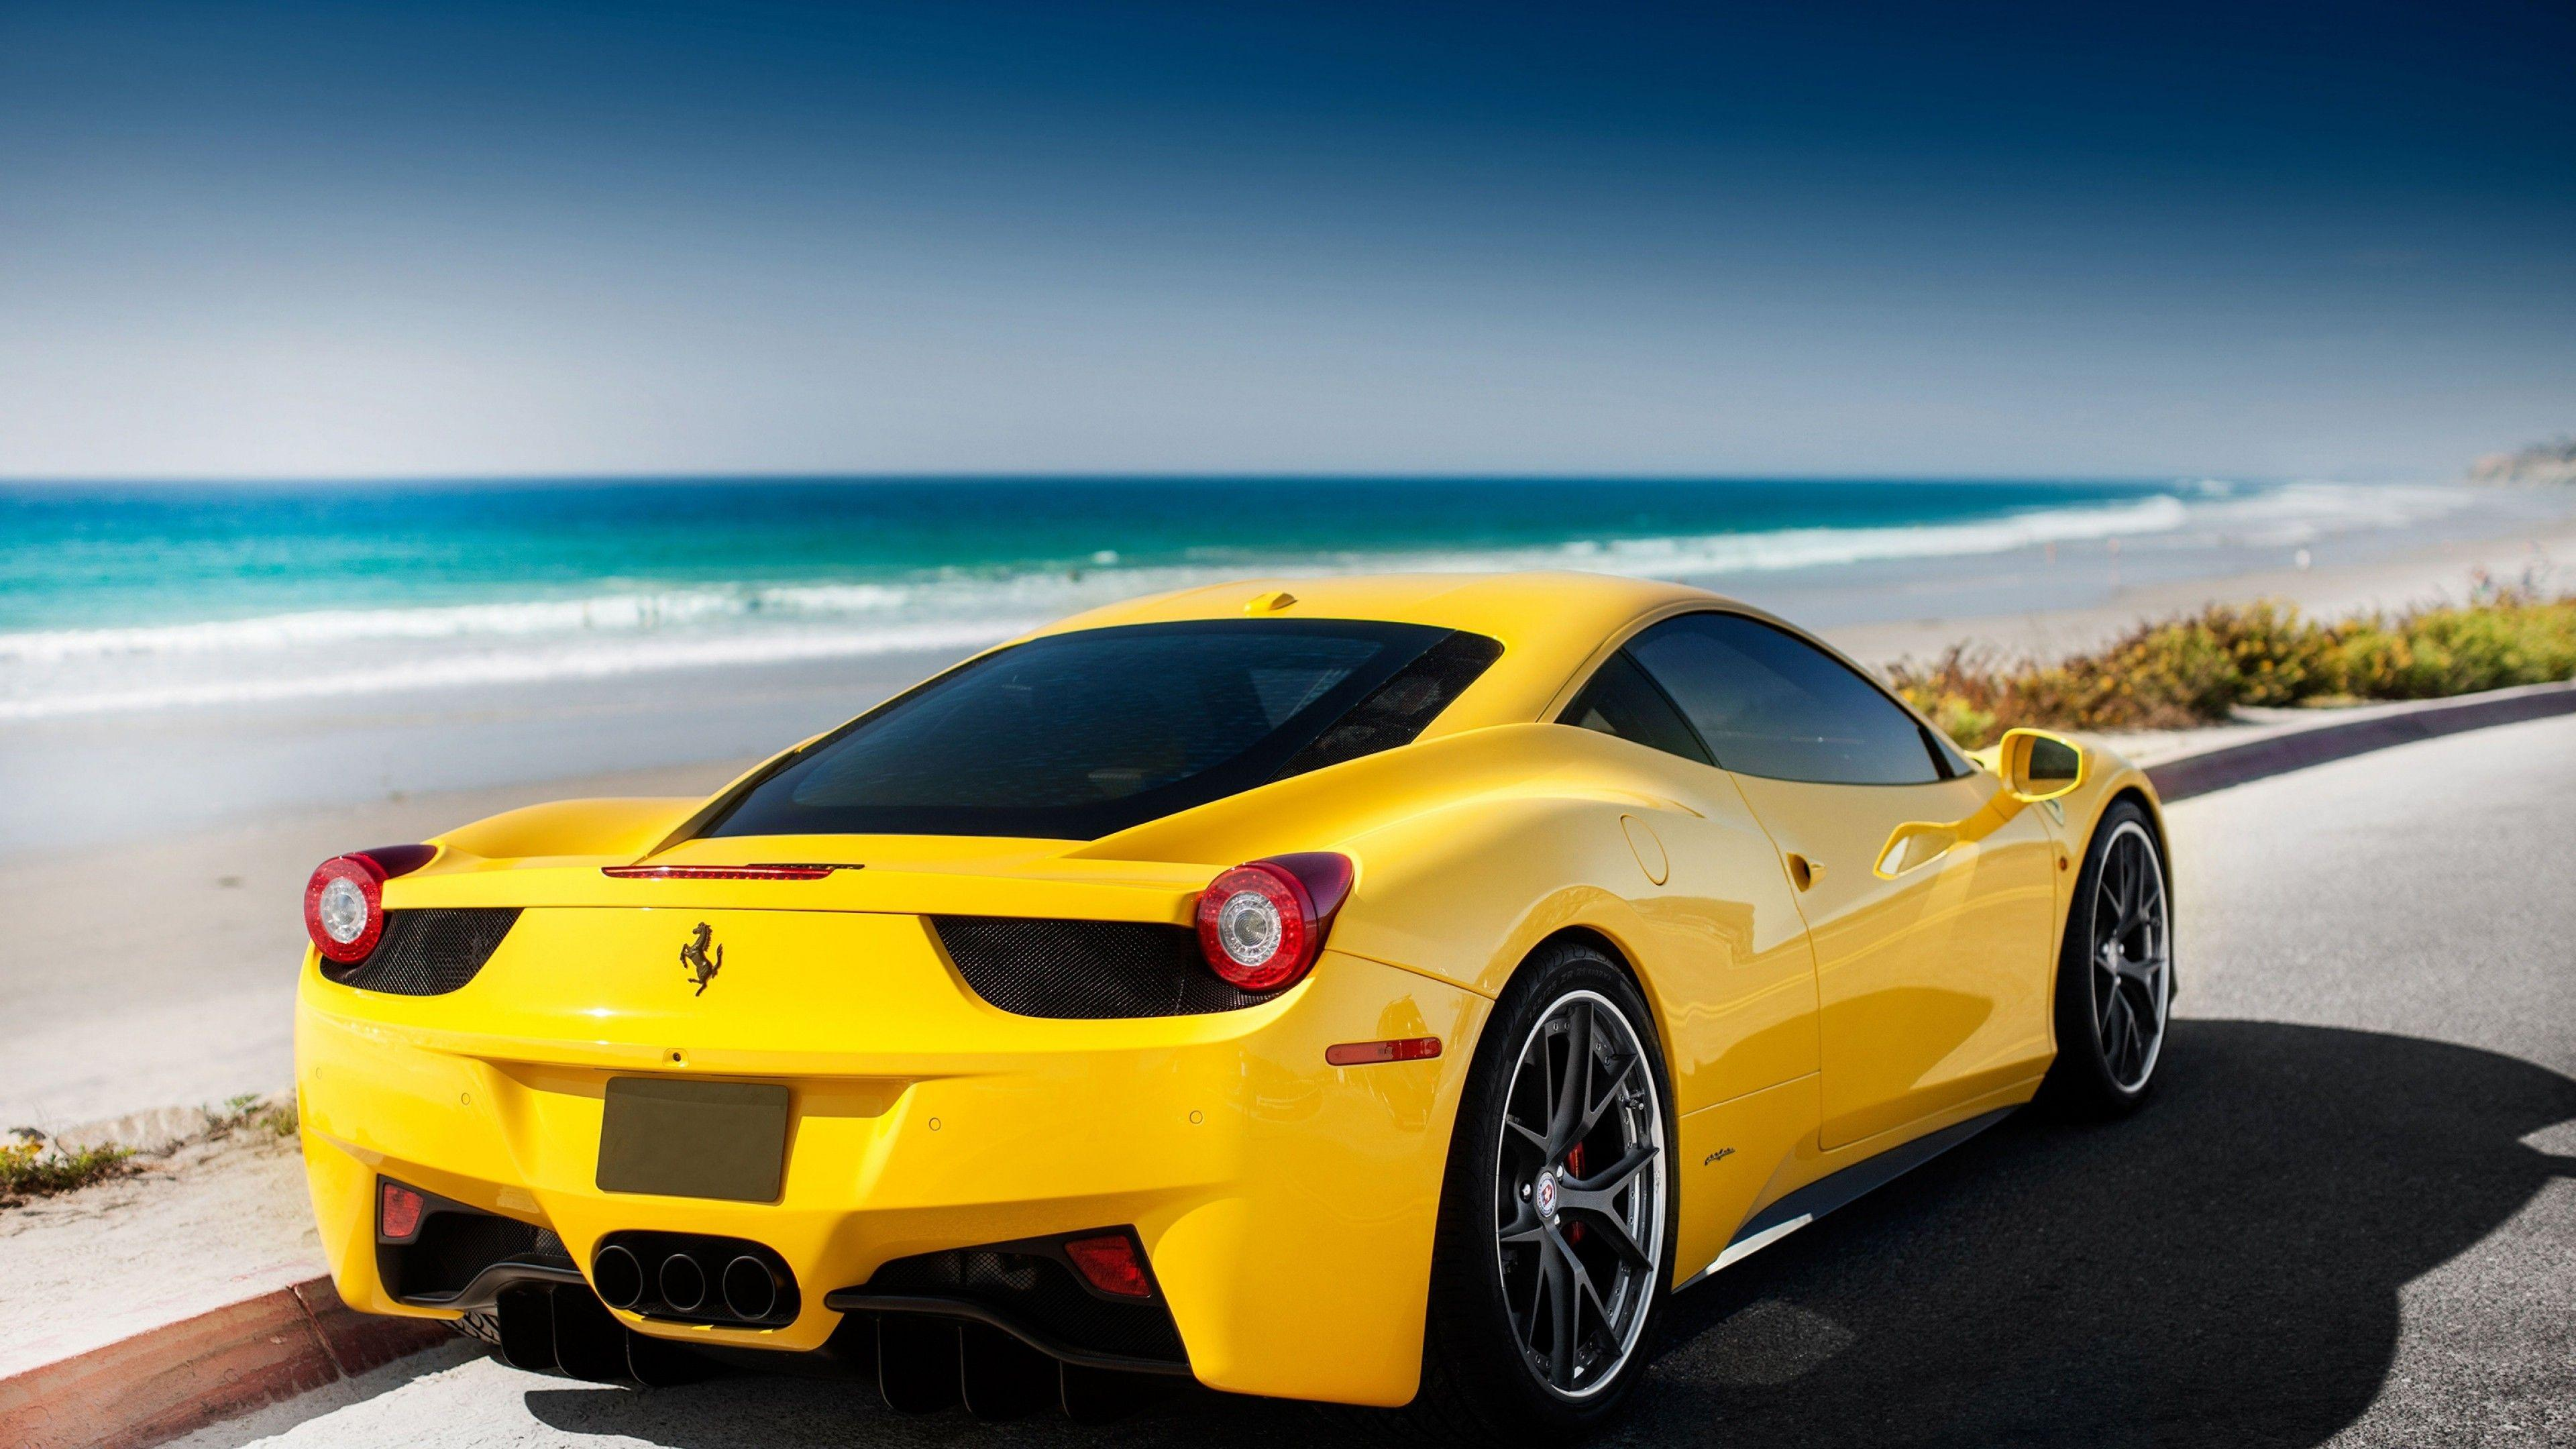 Download the Ferrari 488 Spider Wallpaper, Ferrari 488 Spider